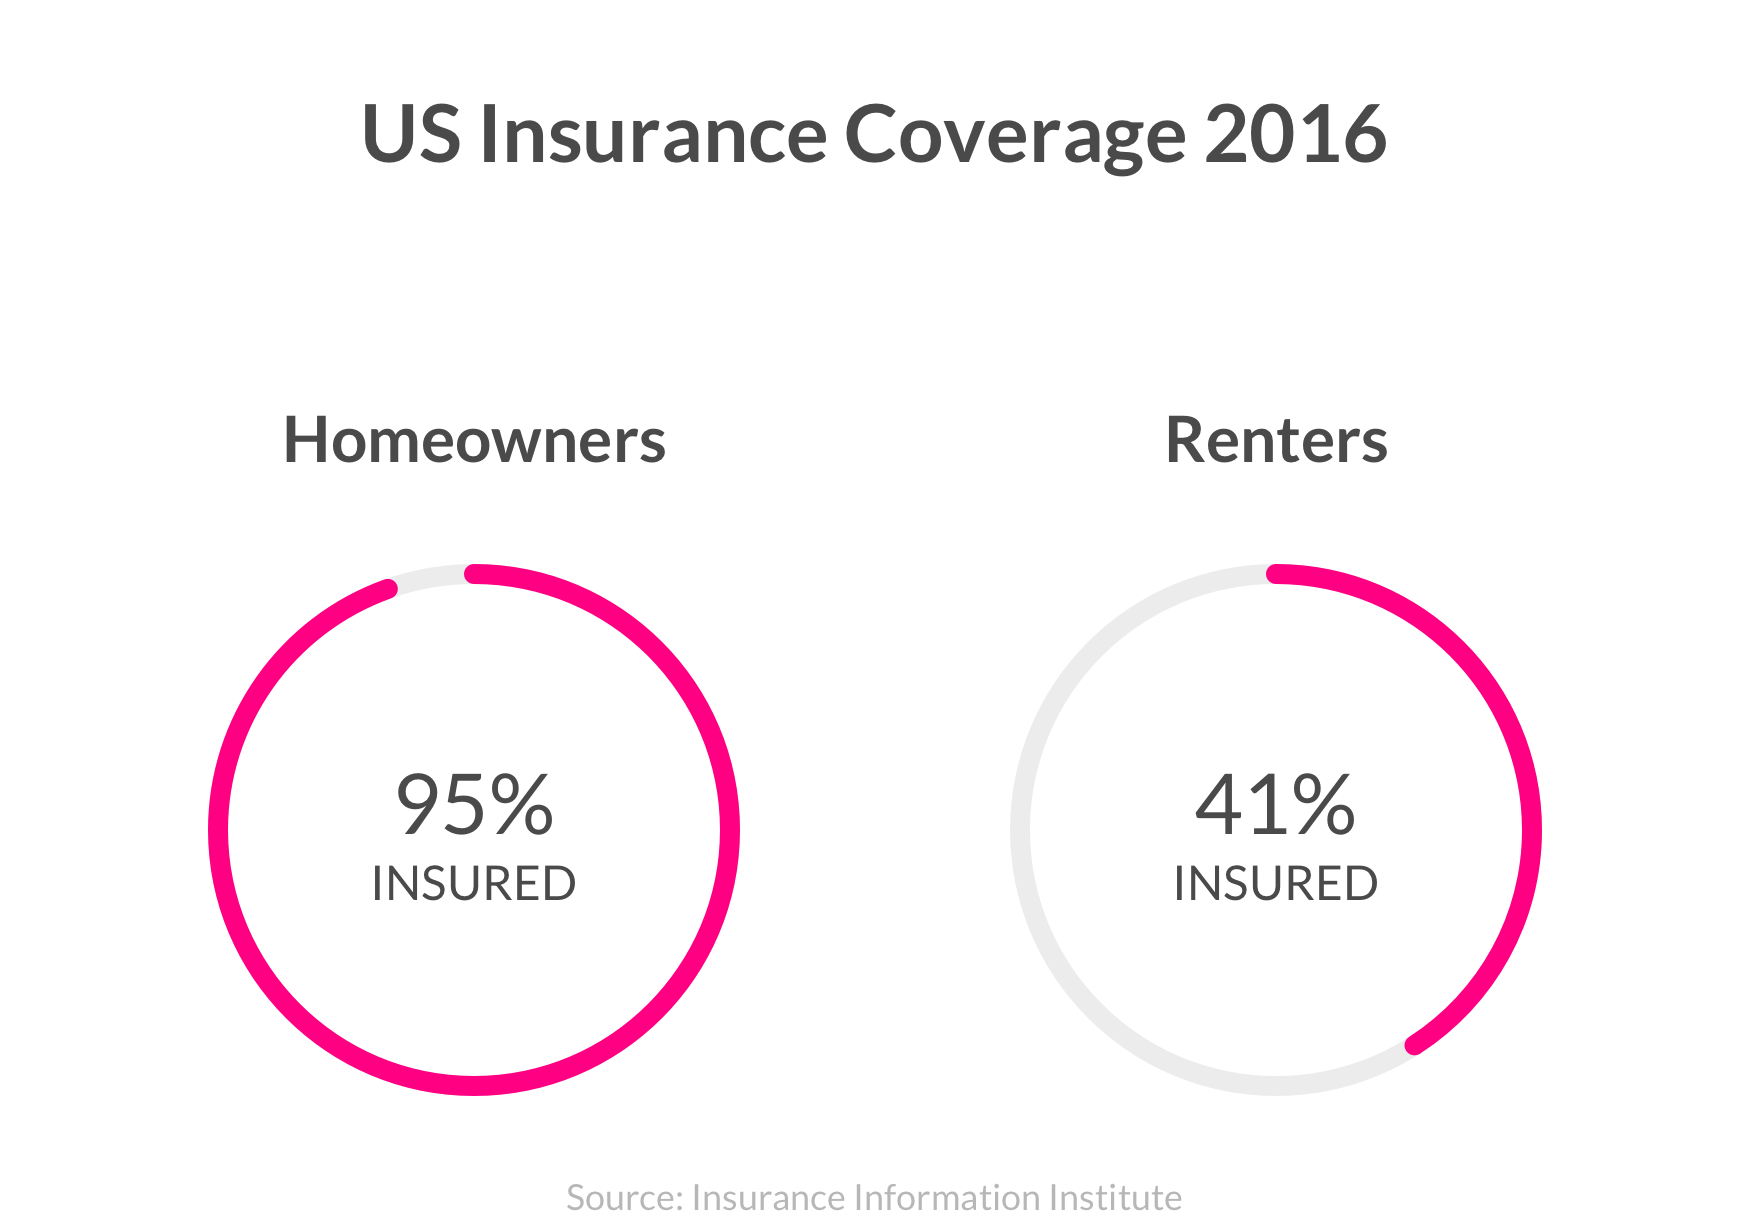 Percentage of Renters vs. Homeowners Covered by Insurance